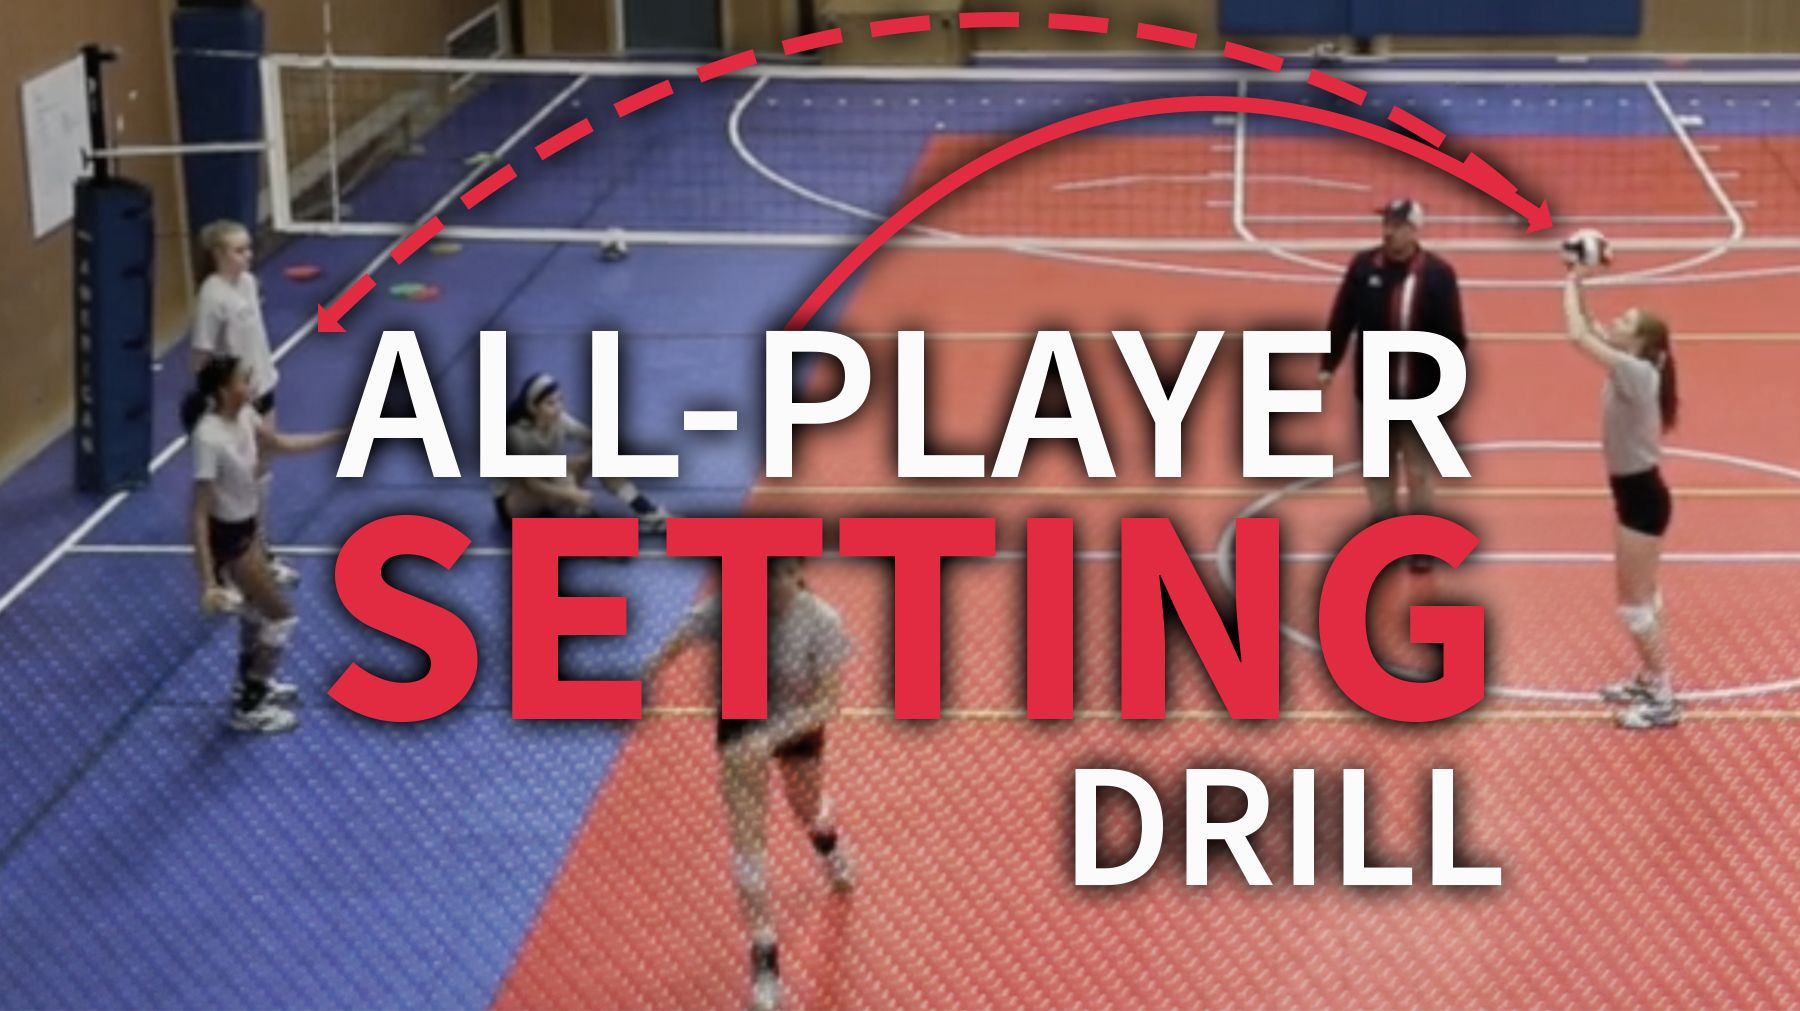 All Player Setting Drill For Reps And Conditioning The Art Of Coaching Volleyball Setting Drills Coaching Volleyball Volleyball Workouts